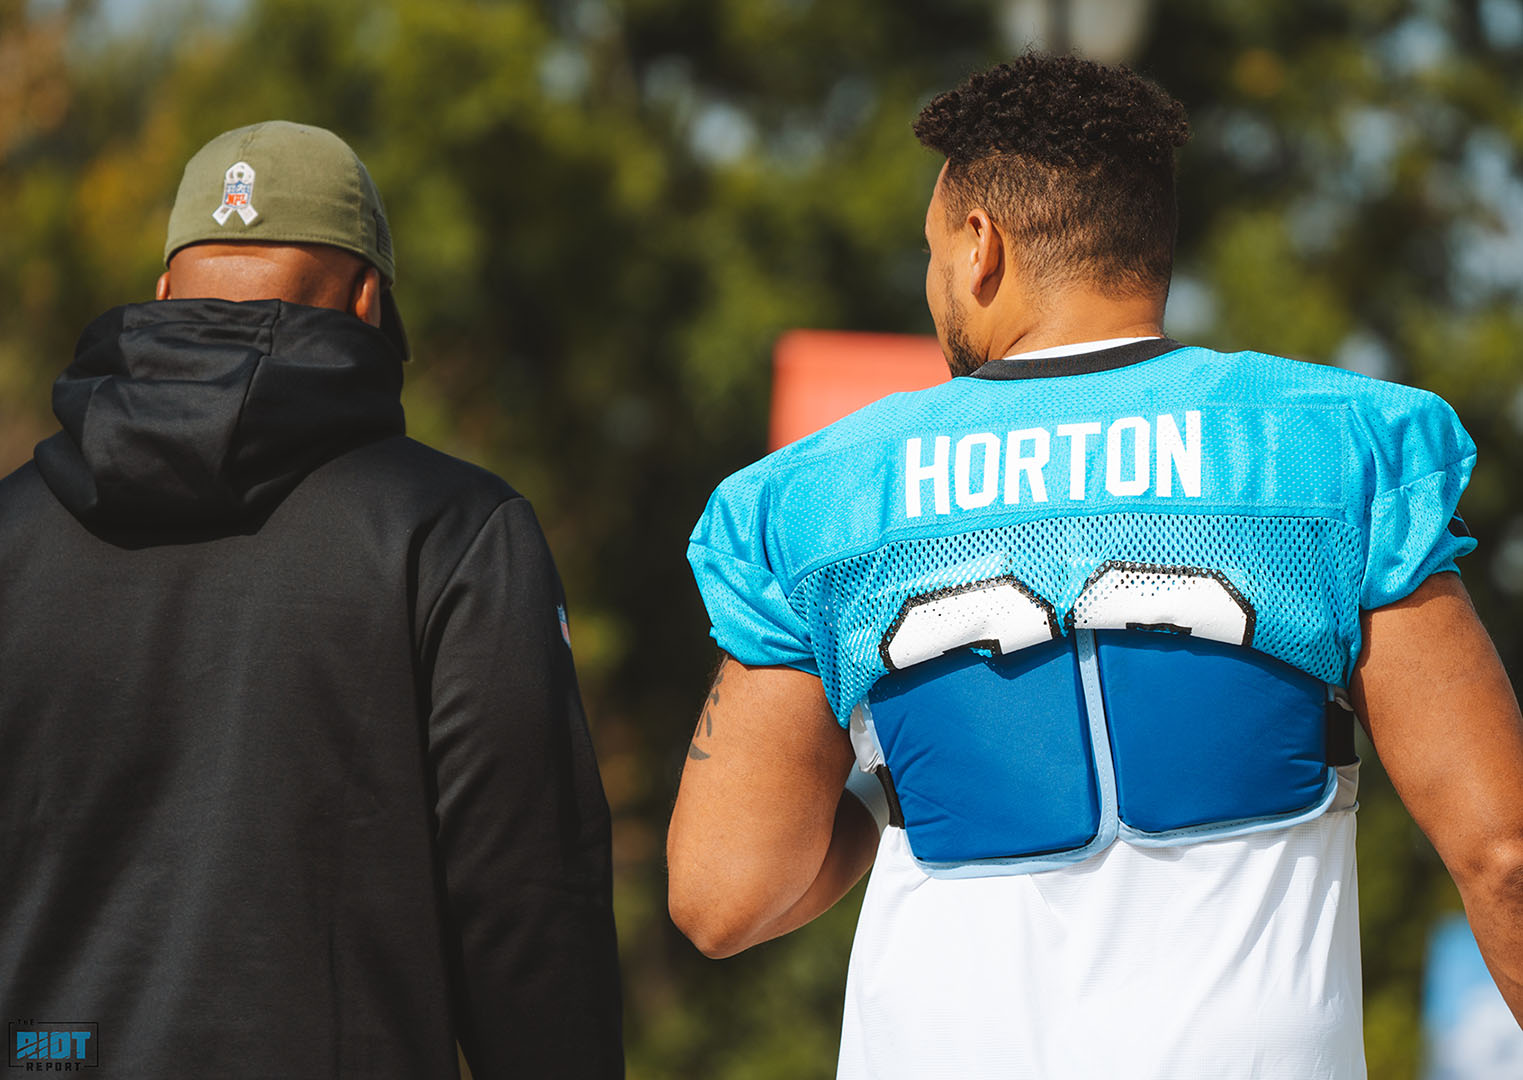 Thursday Panthers Injury Report: Here Comes Horton